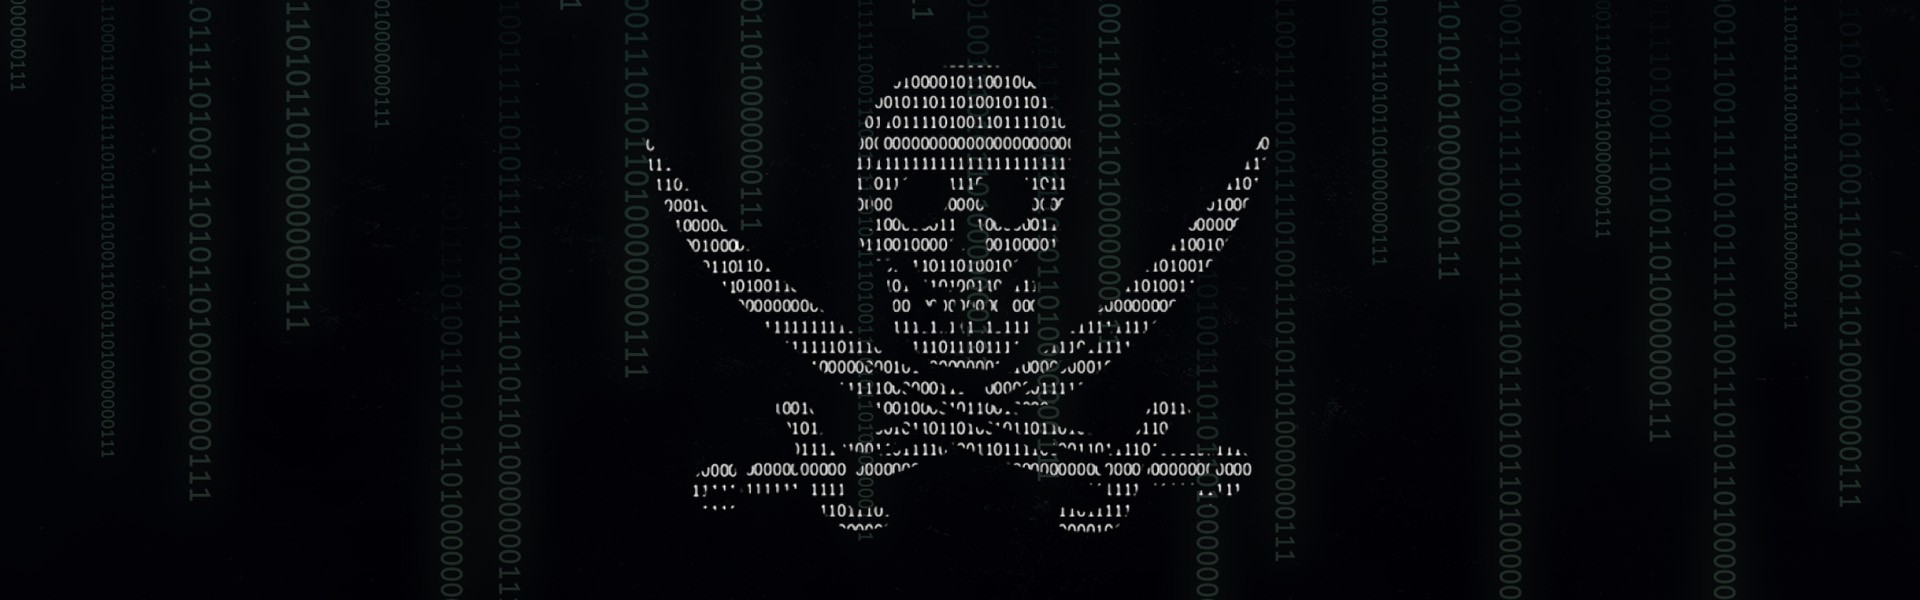 In Russia, the popularity of pirated software